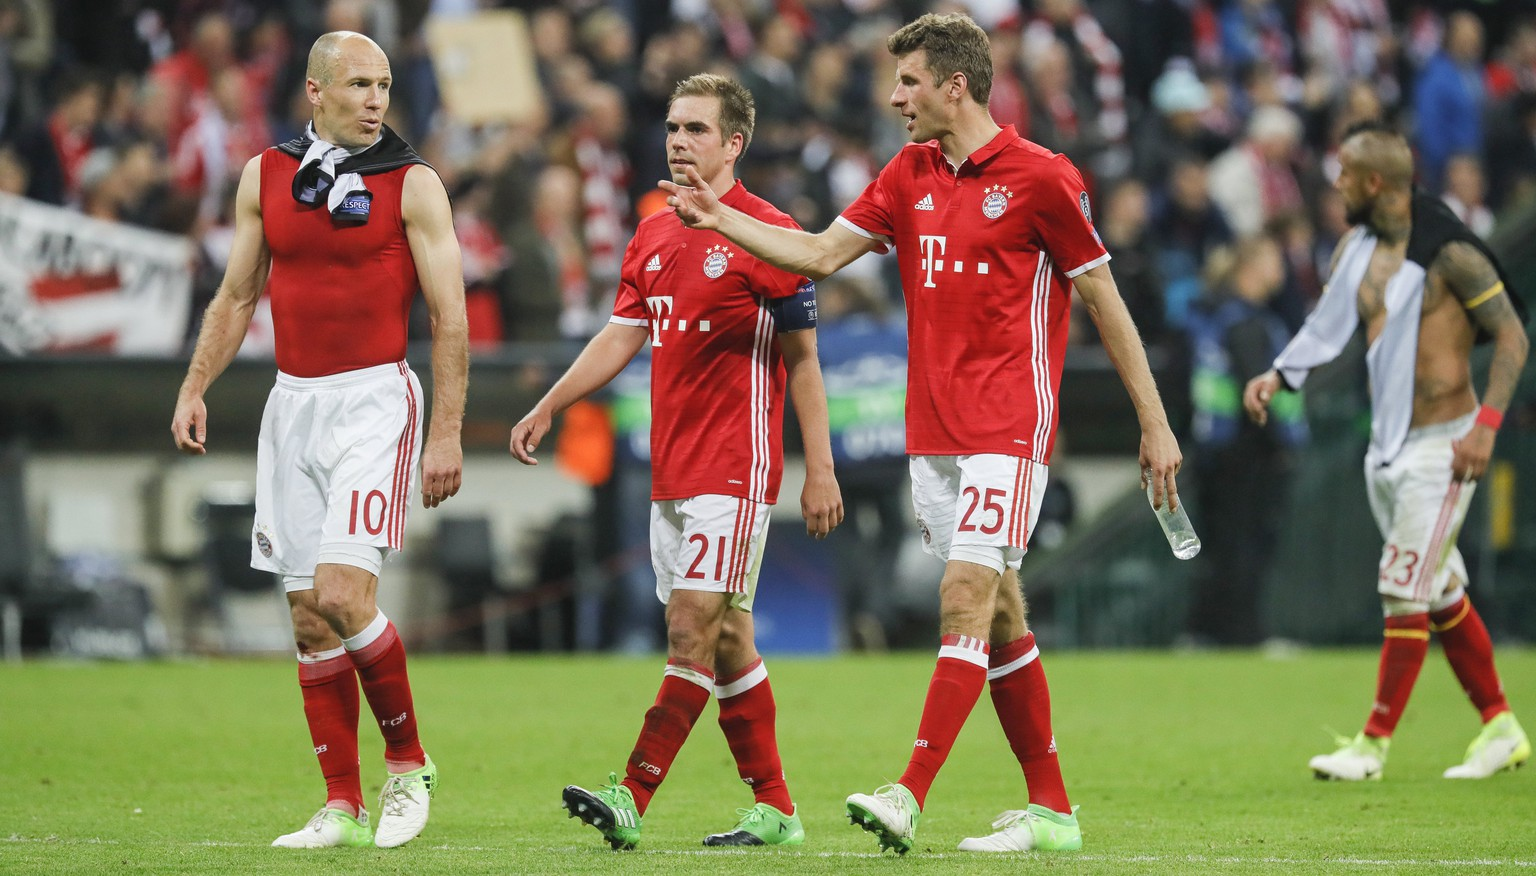 epa05905169 (L-R) Bayern's Arjen Robben, Philipp Lahm and Thomas Muller react at the end of the UEFA Champions League quarter final, first leg soccer match between Bayern Munich and Real Madrid at Allianz Arena in Munich, Germany, 12 April 2017. Munich lost the match 1-2.  EPA/RONALD WITTEK